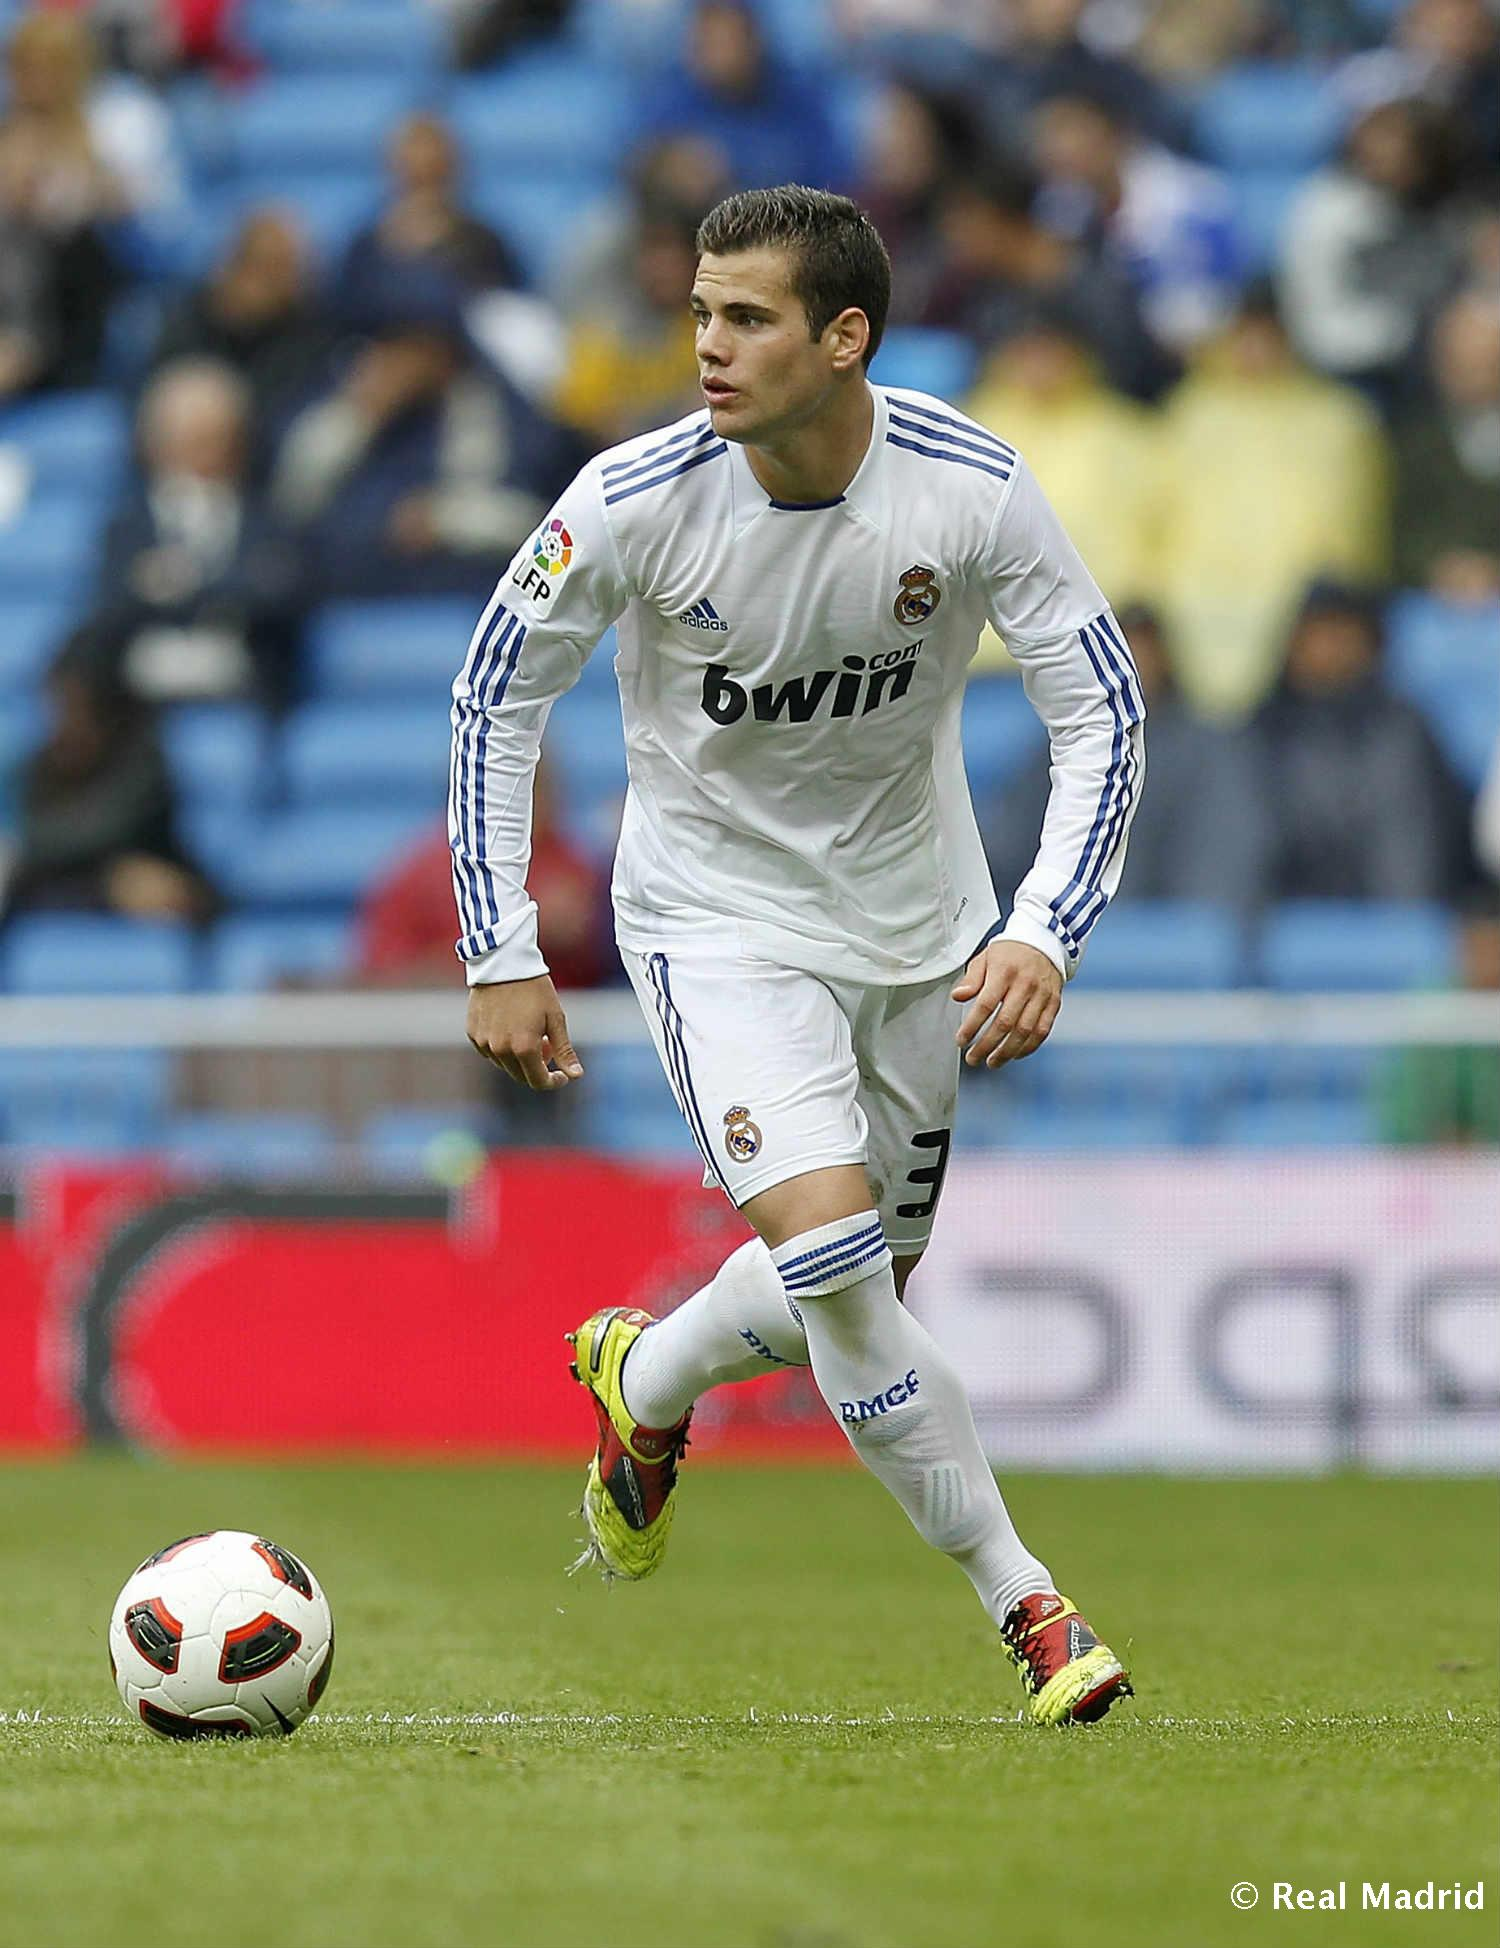 Real Madrid - Nacho - 27-01-2014